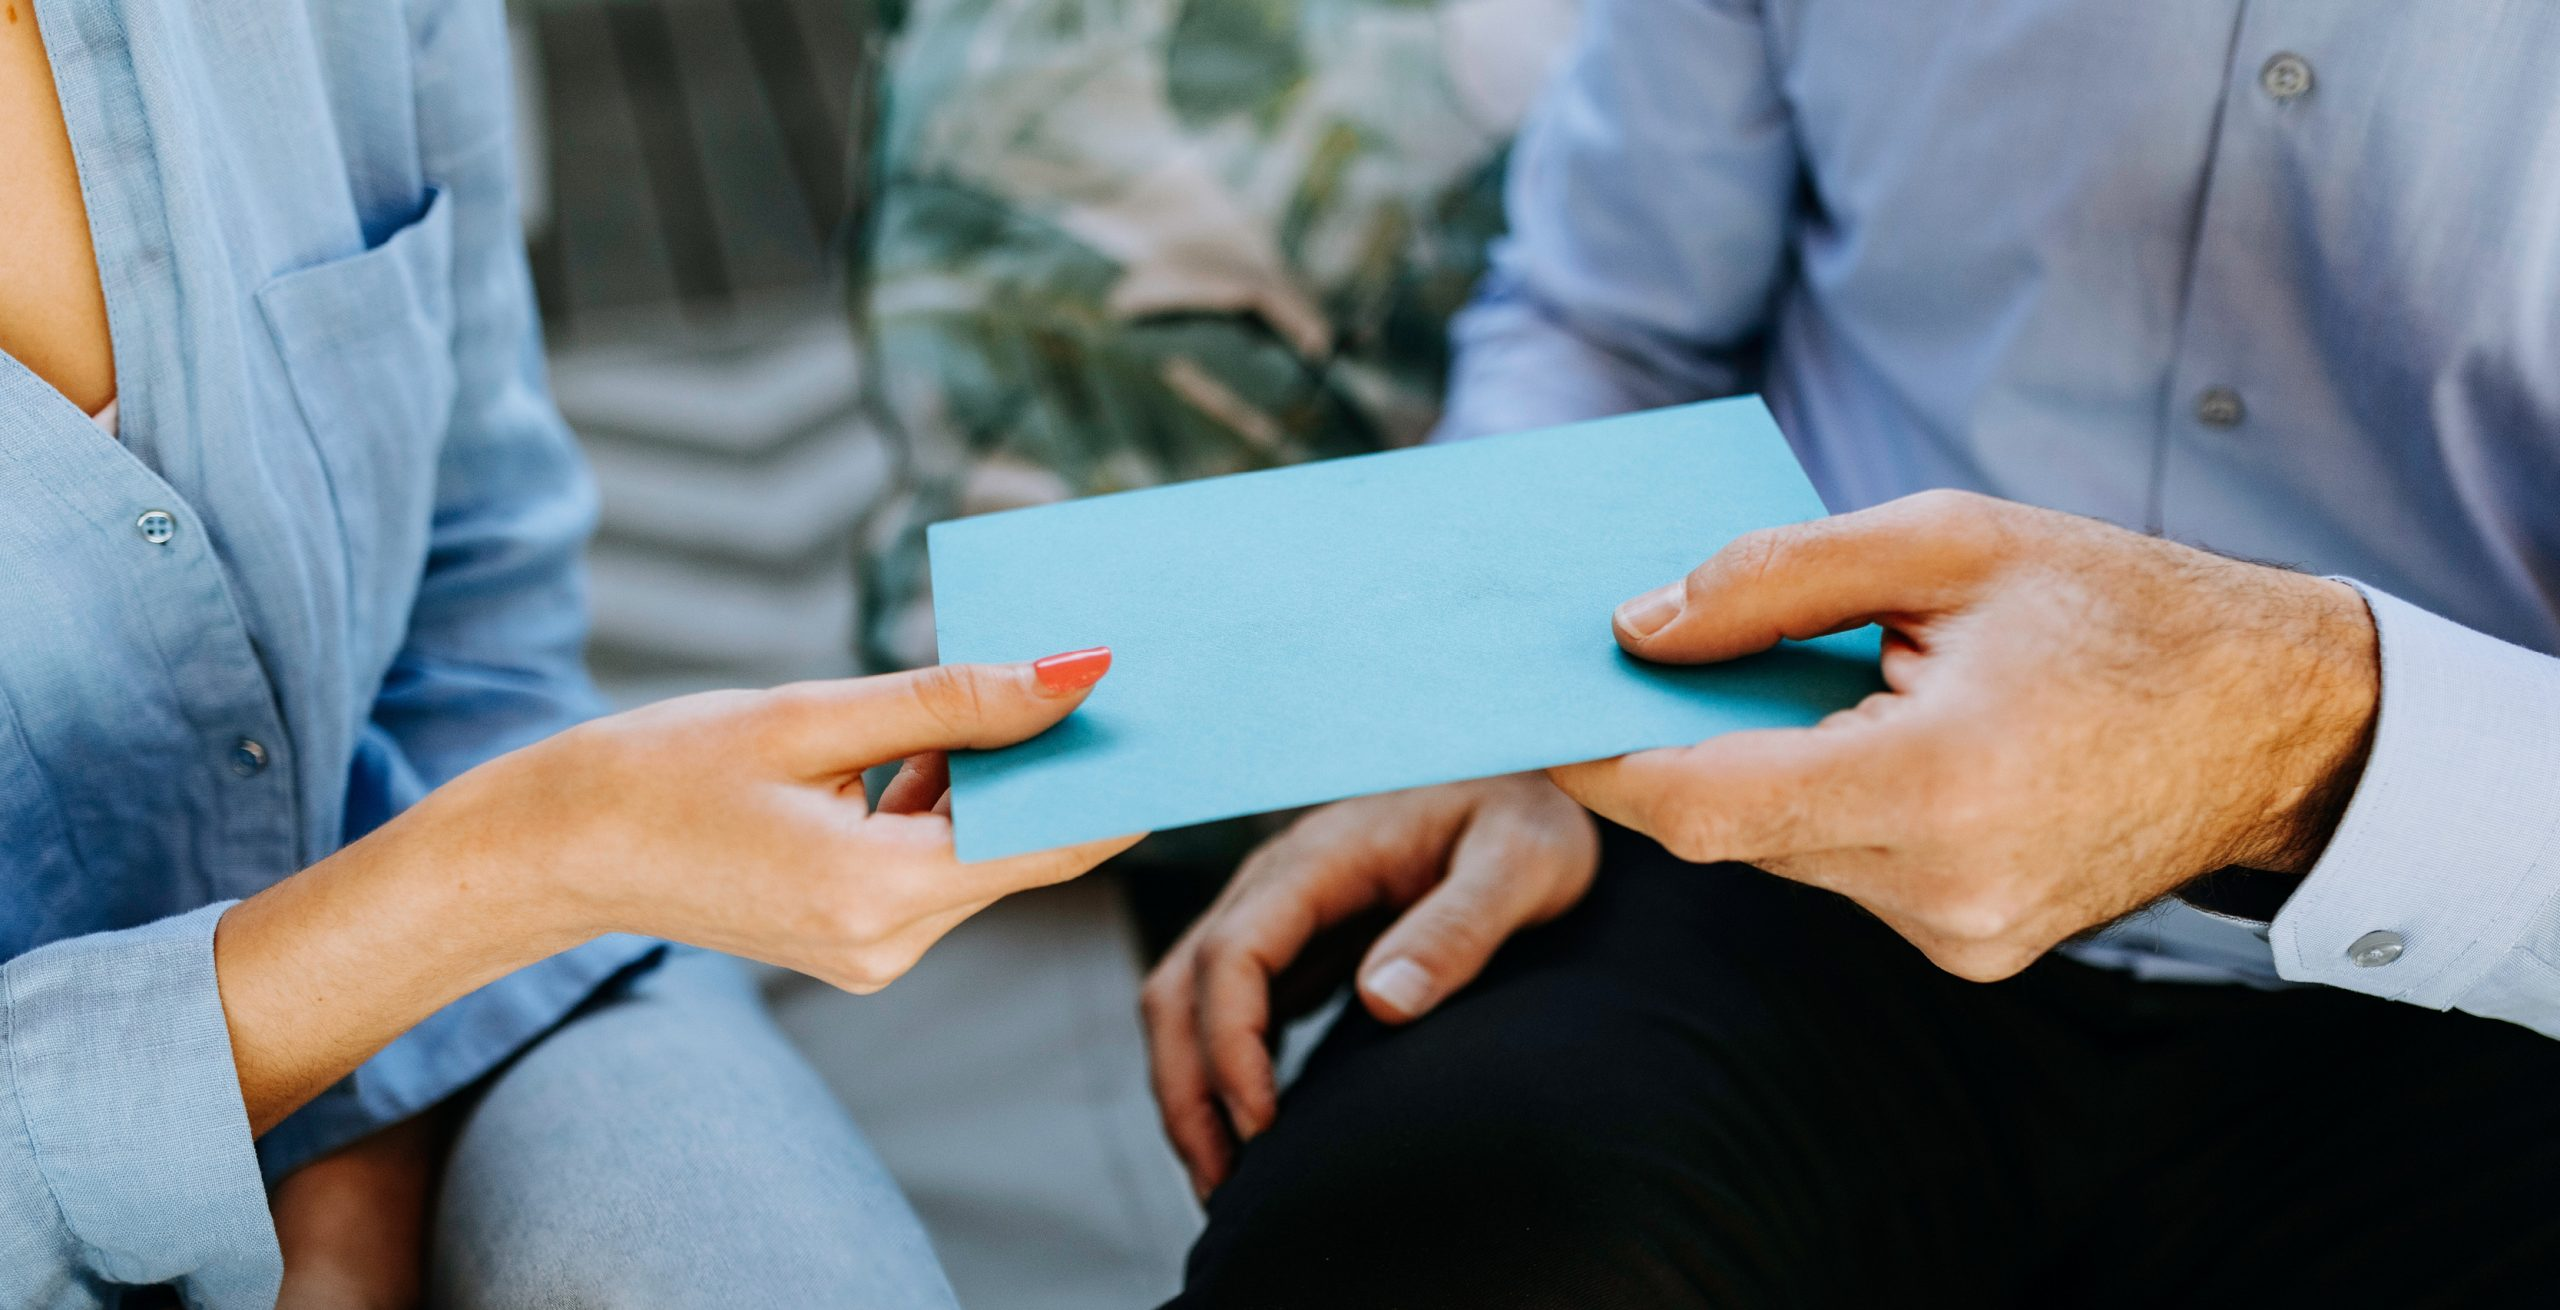 An close-up image of an older person and a younger person handing off a blue envelope.